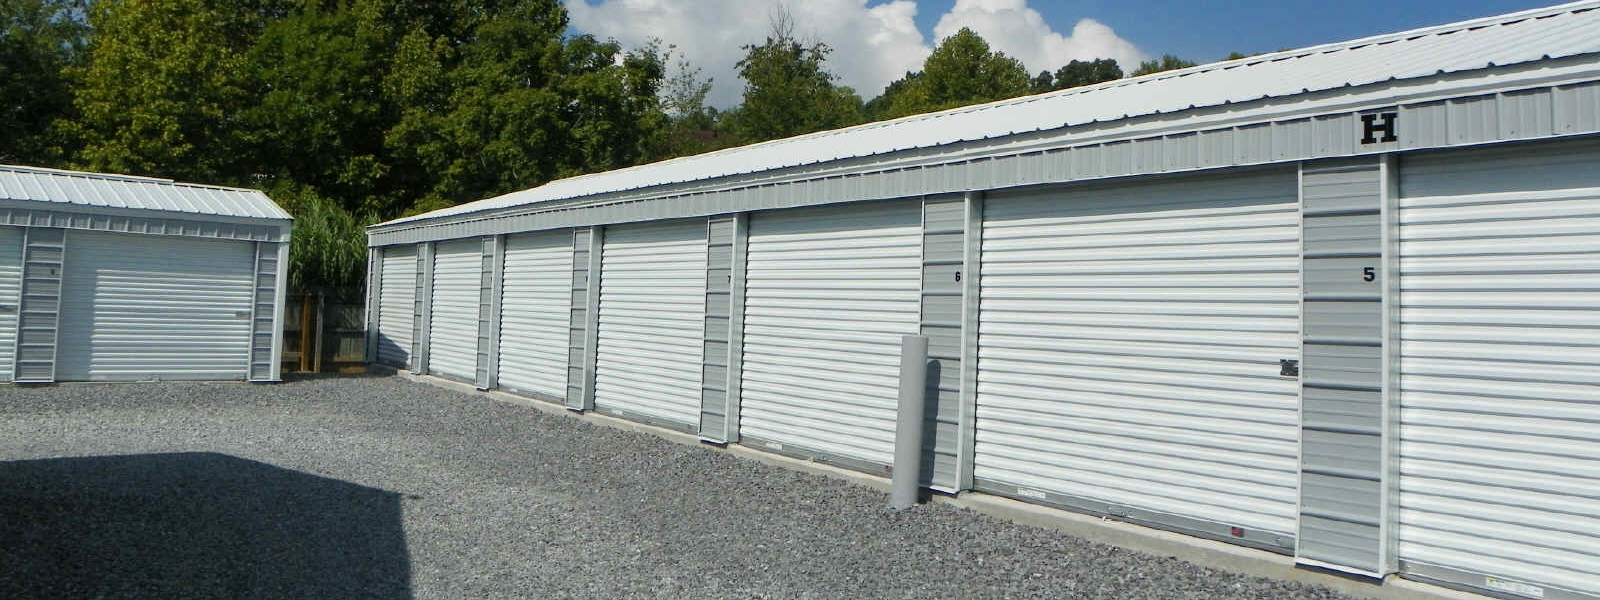 Additional new storage buildings now available!